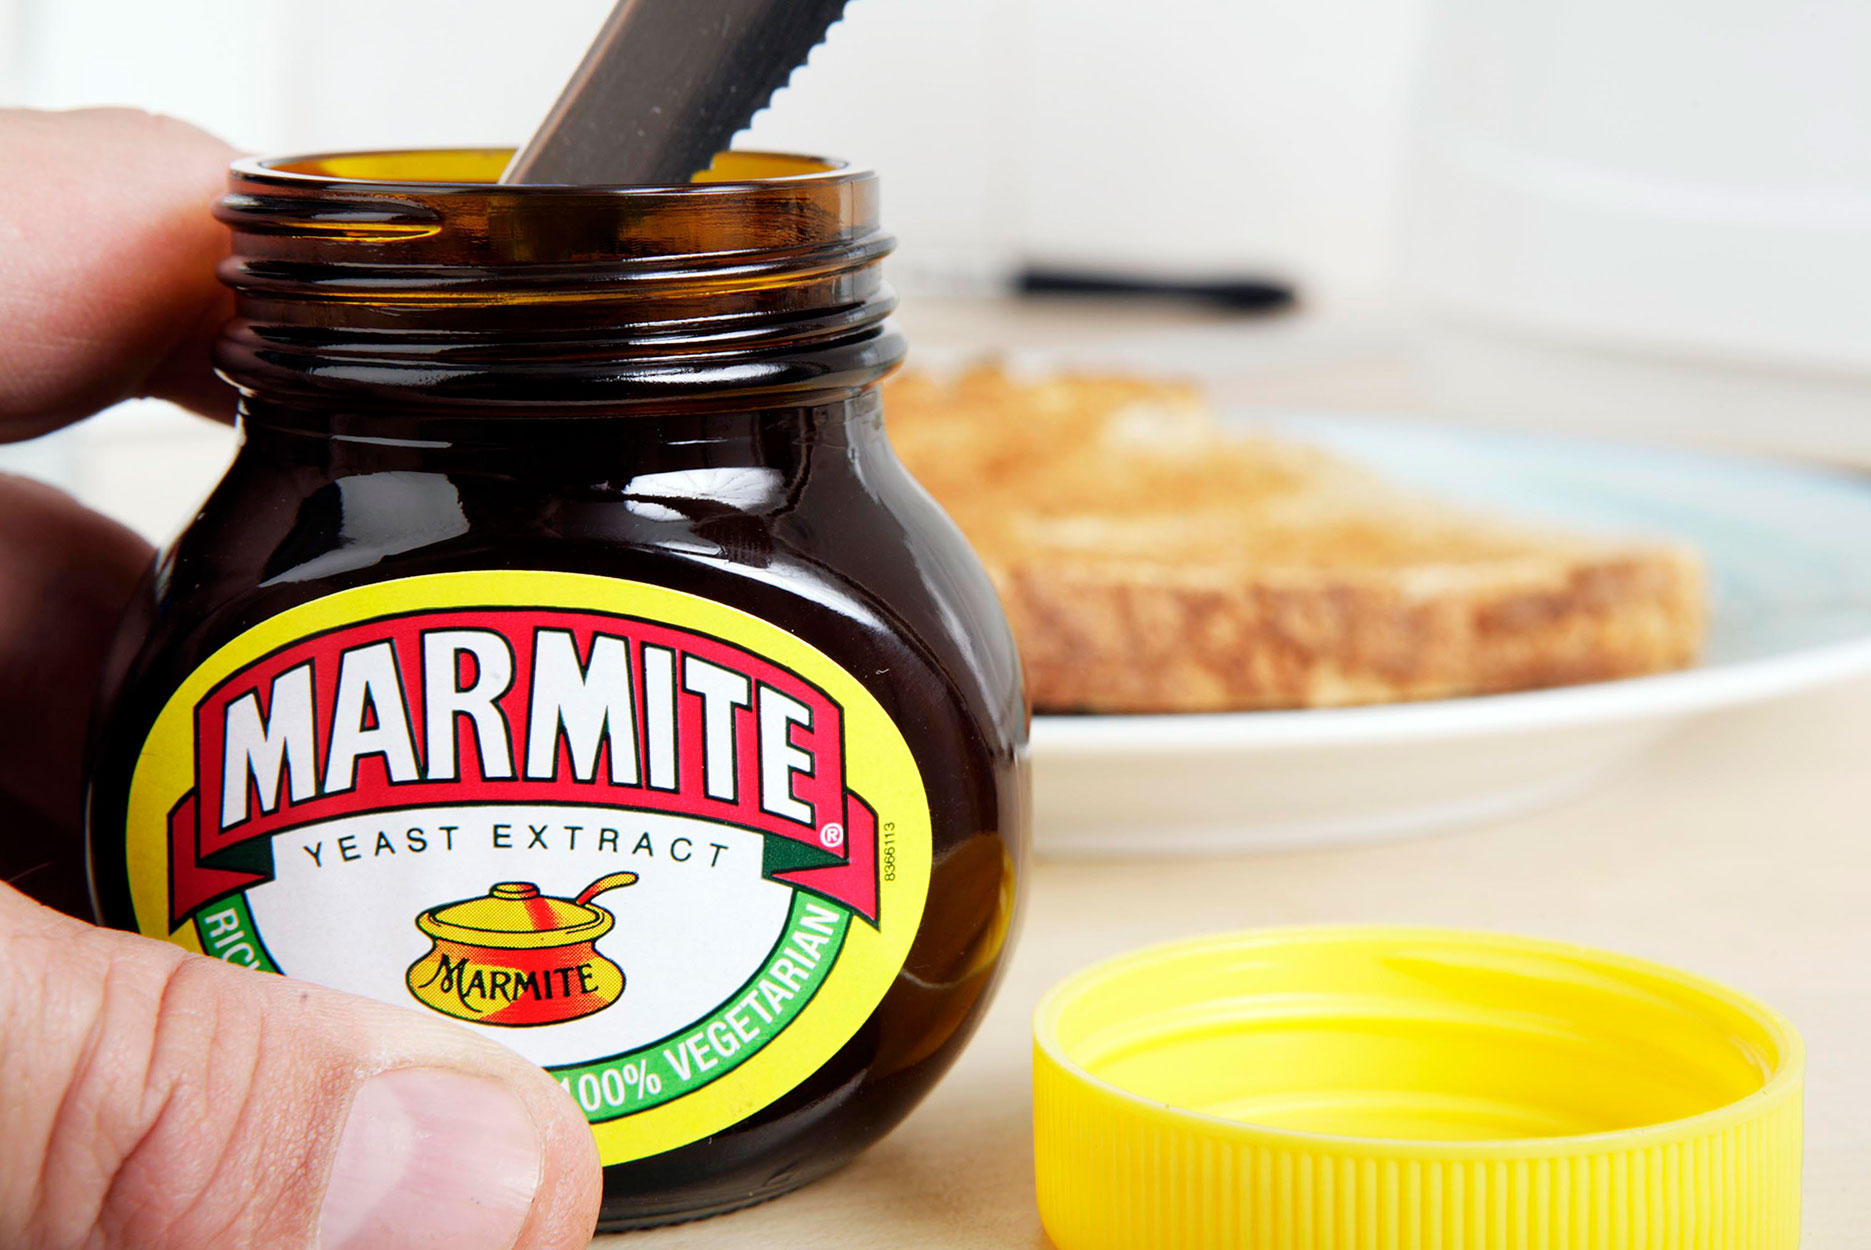 A man getting Marmite out of the jar with a knife.